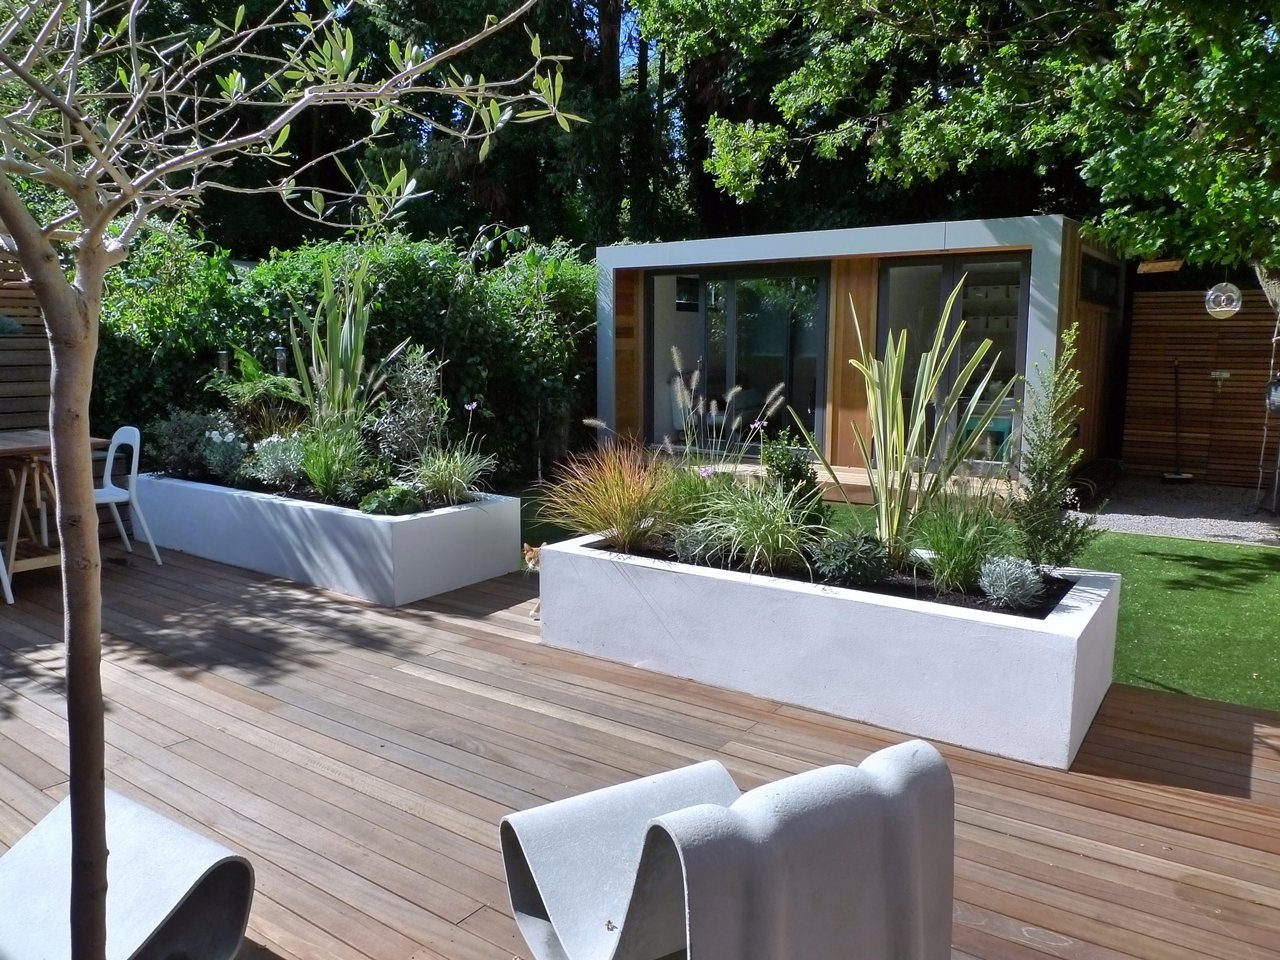 Contemporary garden design london modern home exteriors for Contemporary garden designs and ideas